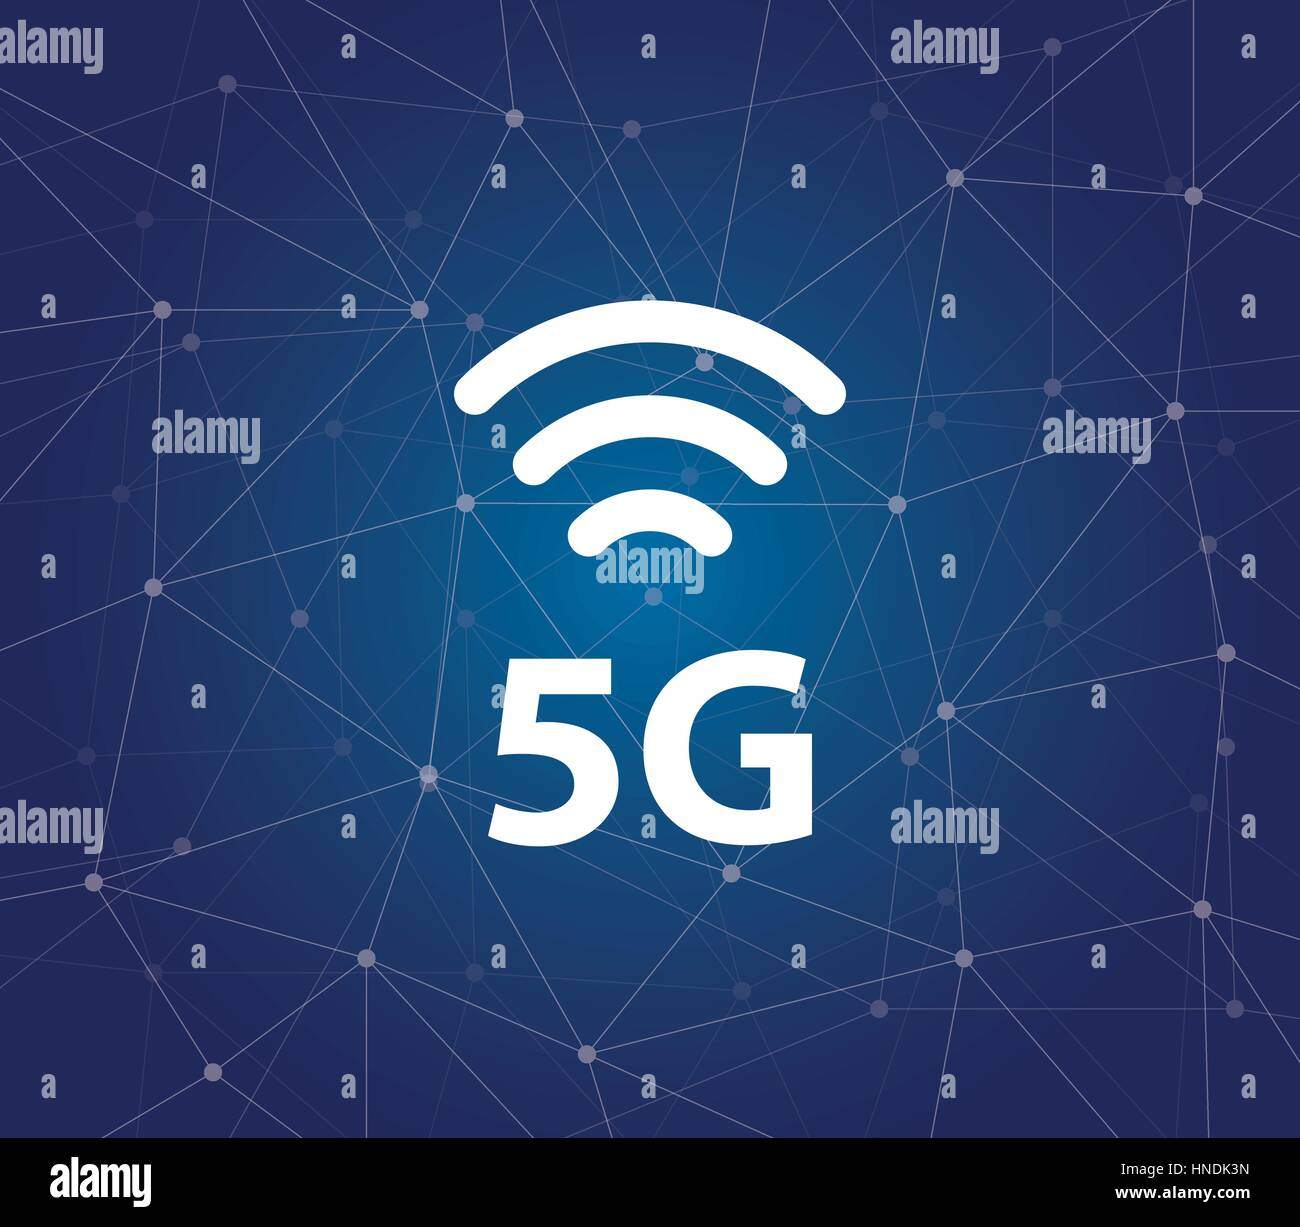 5g - a new ultrafast networks with Millimeter waves, massive MIMO